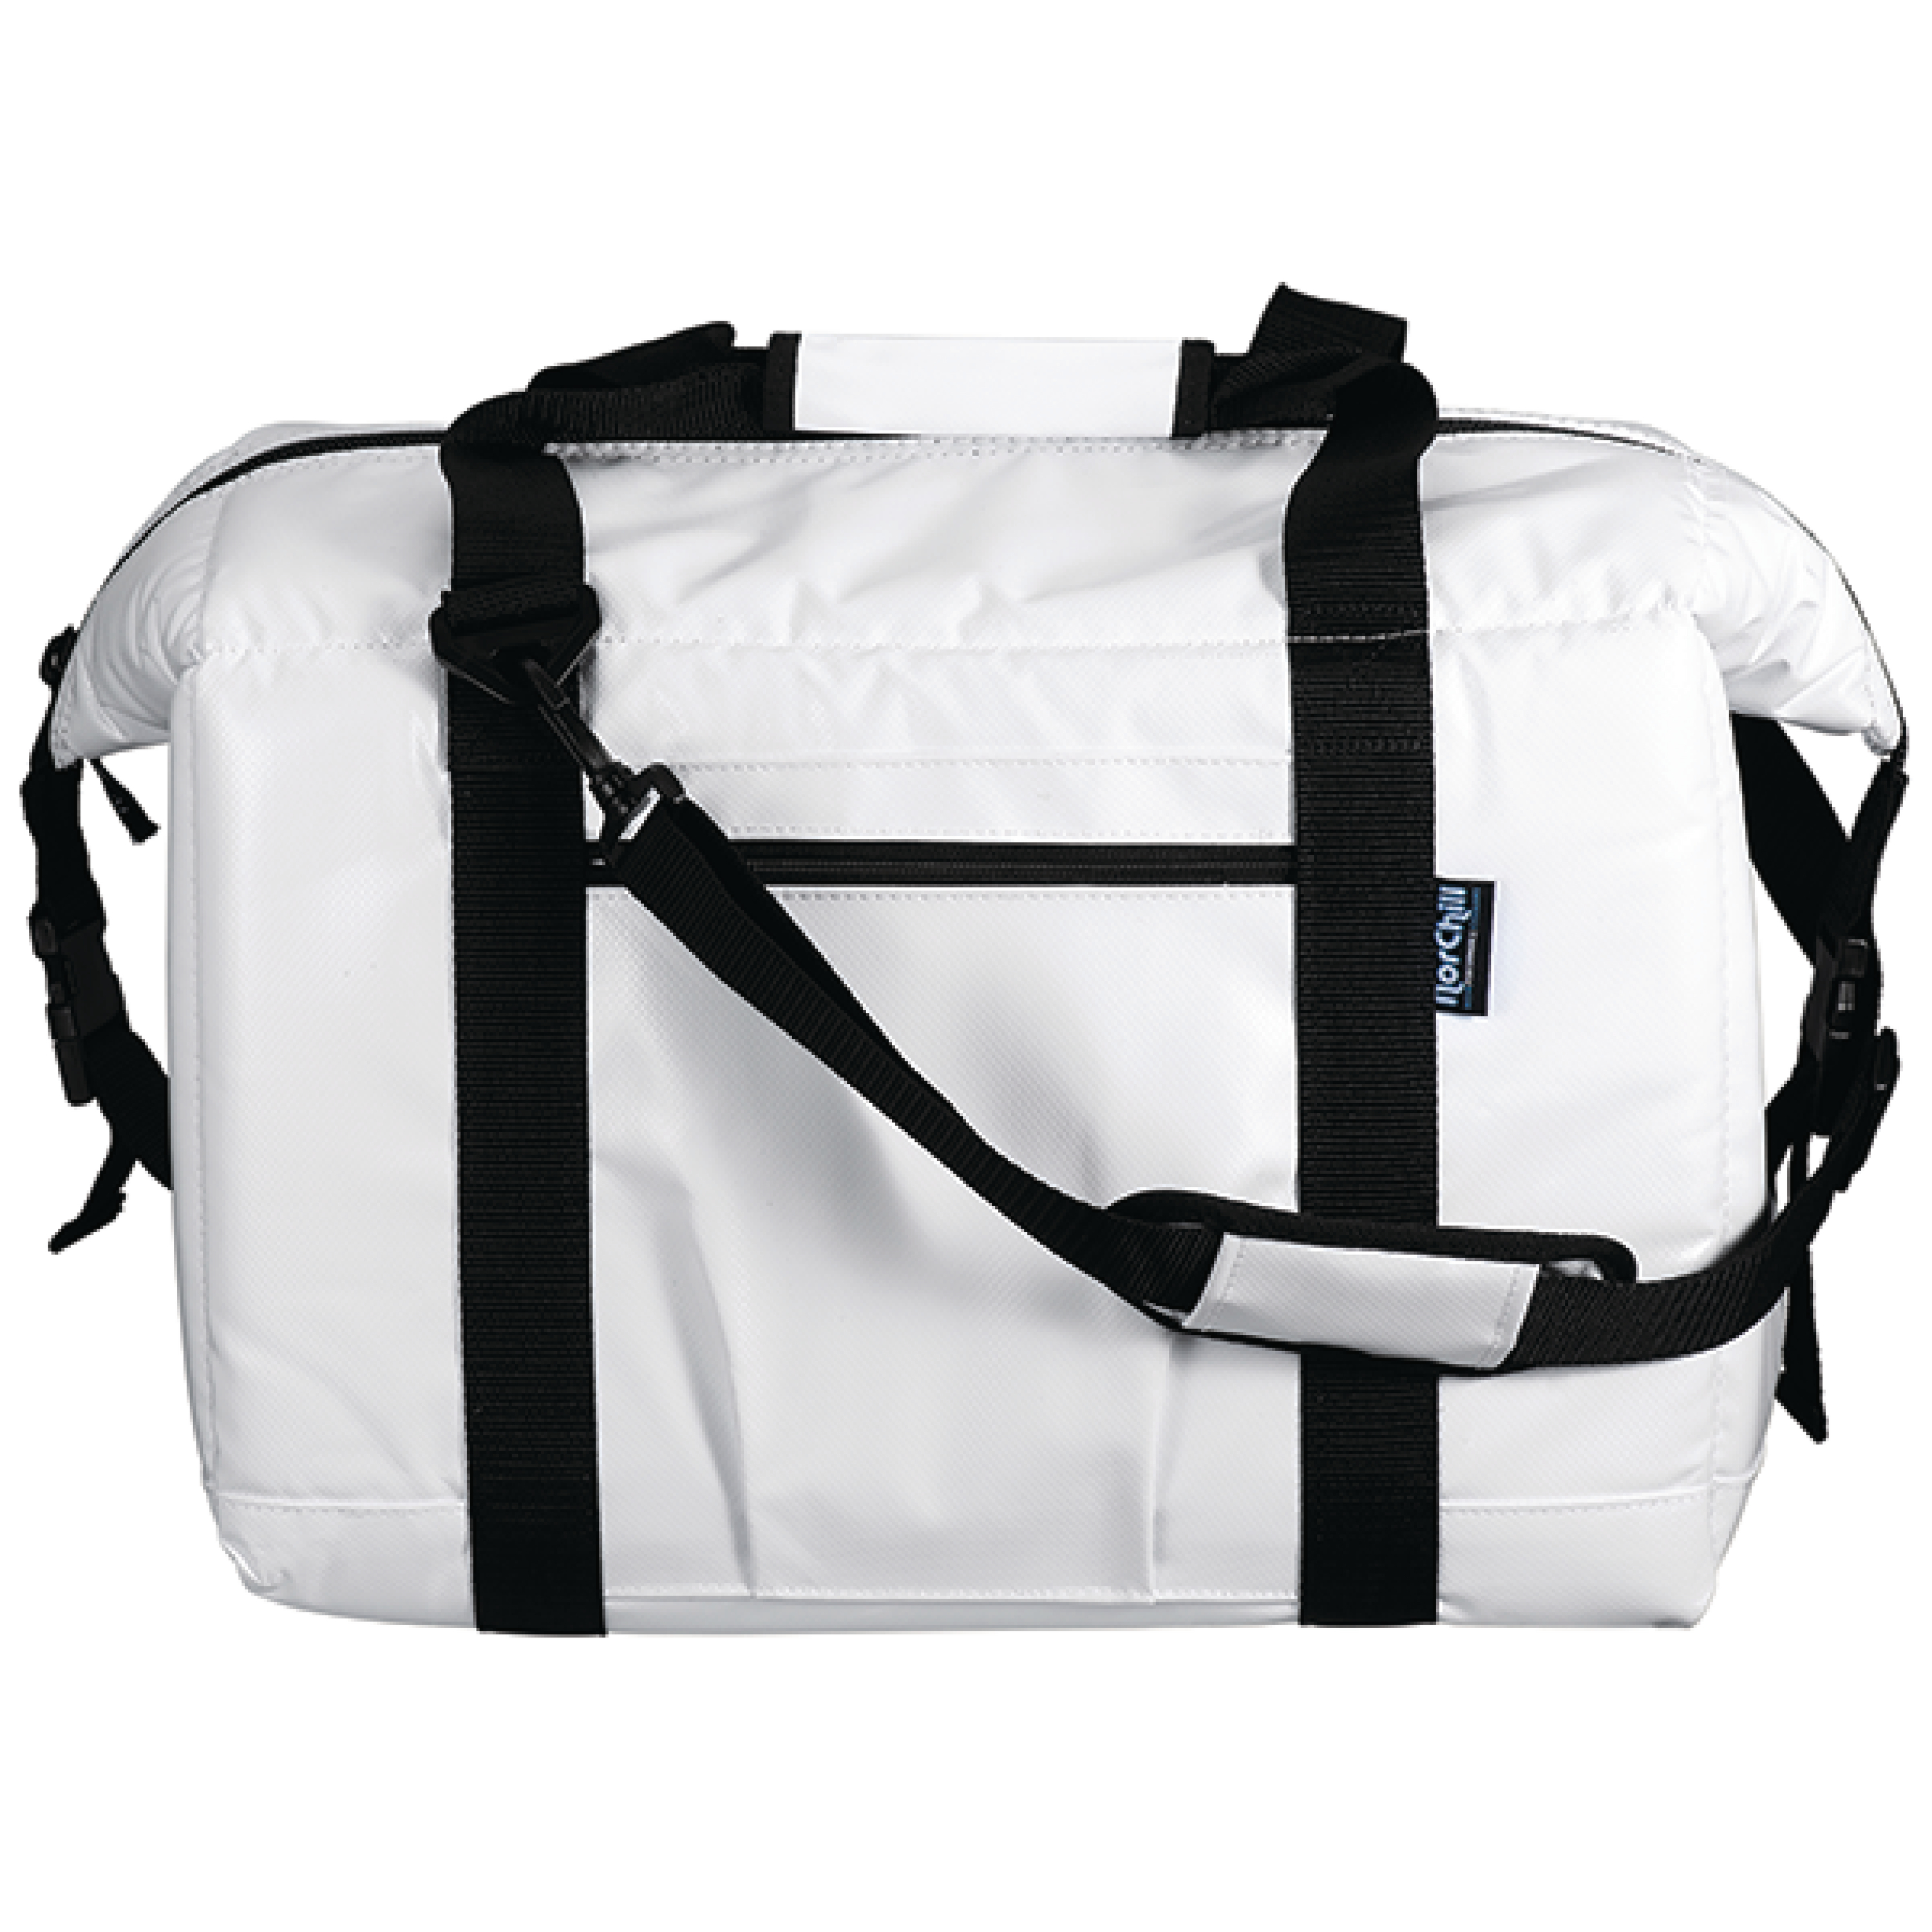 NorChill BoatBag 48 Can Marine Soft Cooler